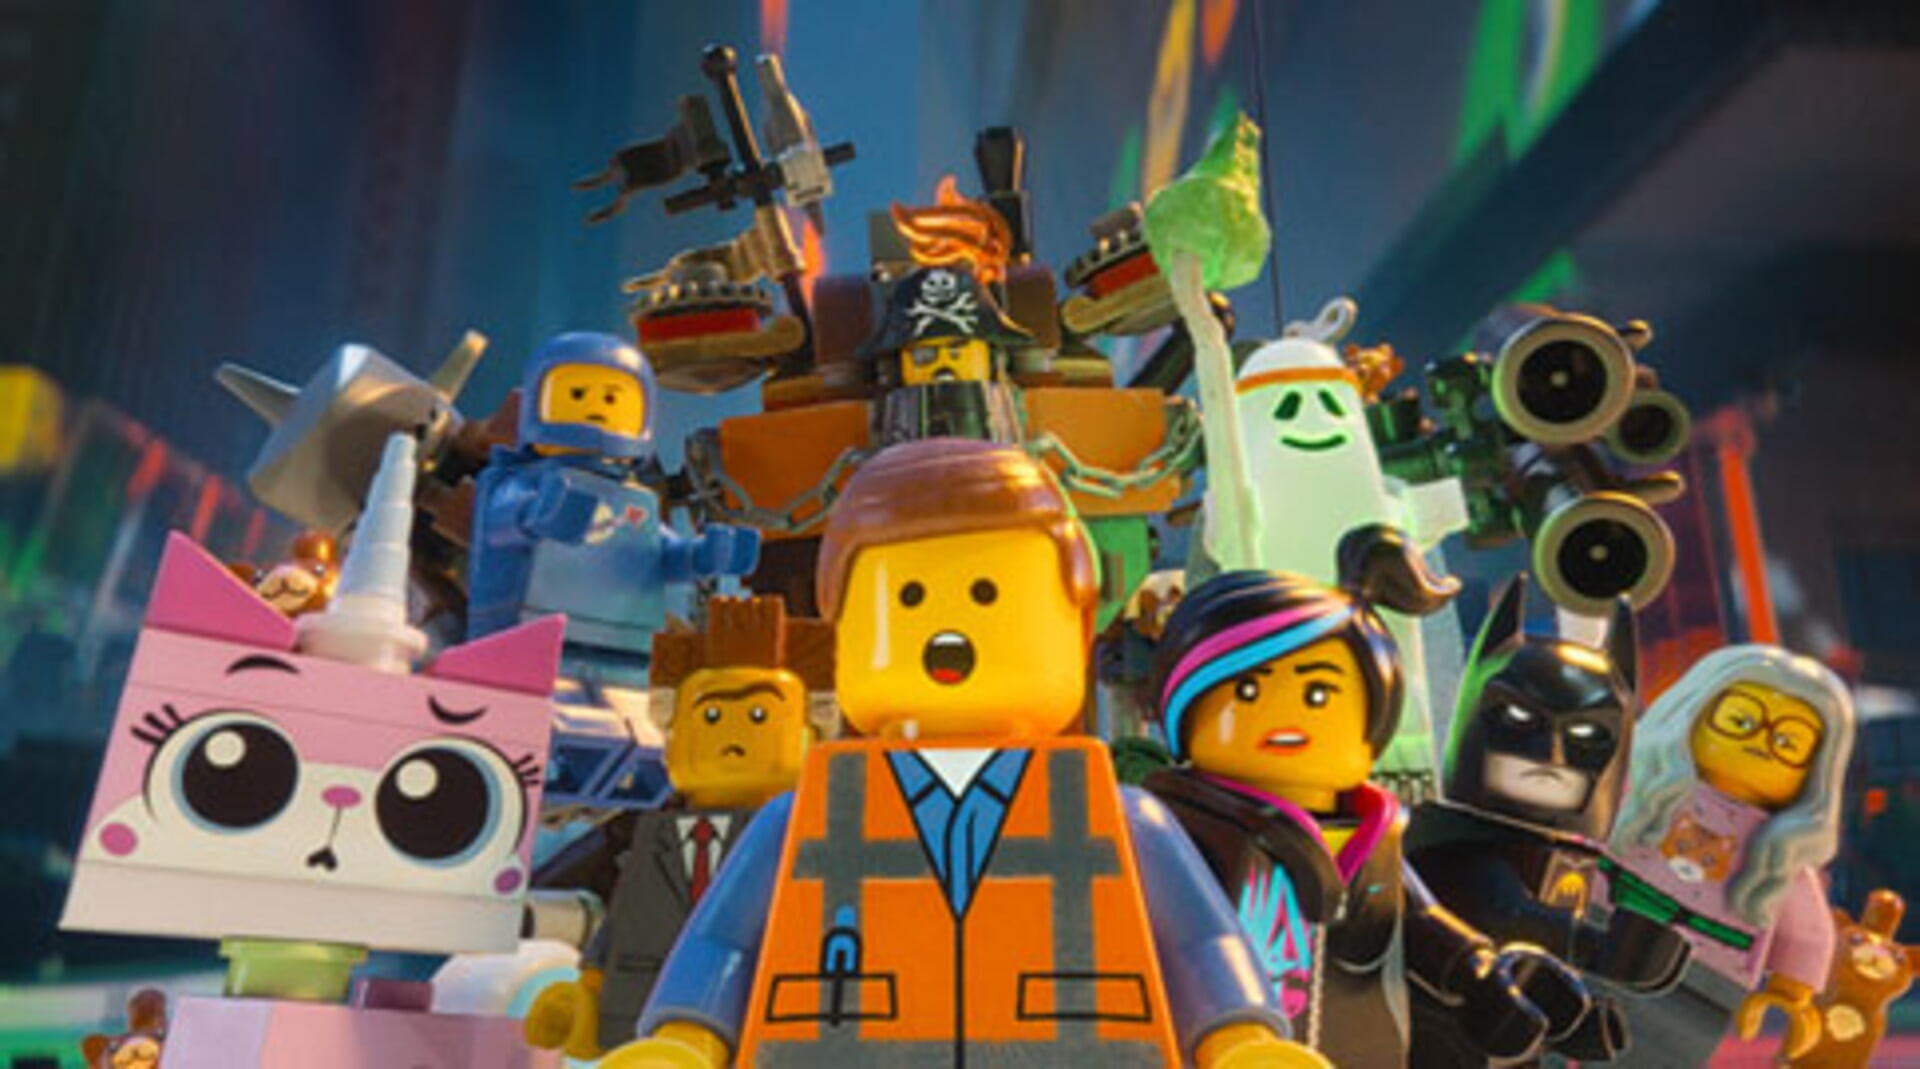 The Lego Movie - Image 22